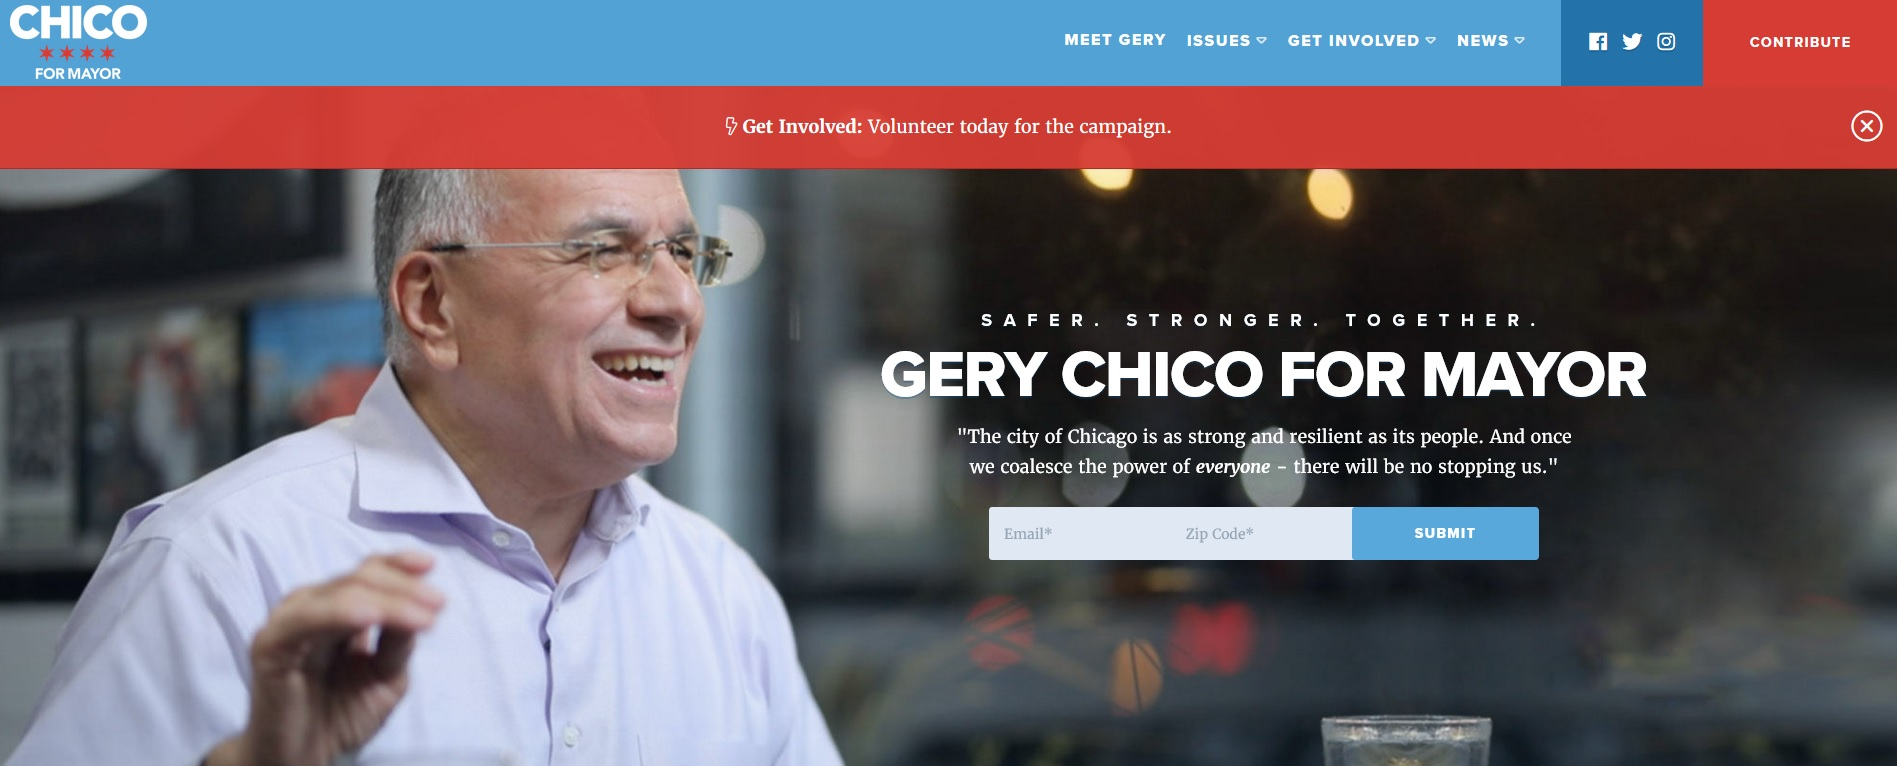 Digital-Marketers-Chicago-Case-Study-Chico-For-Mayor